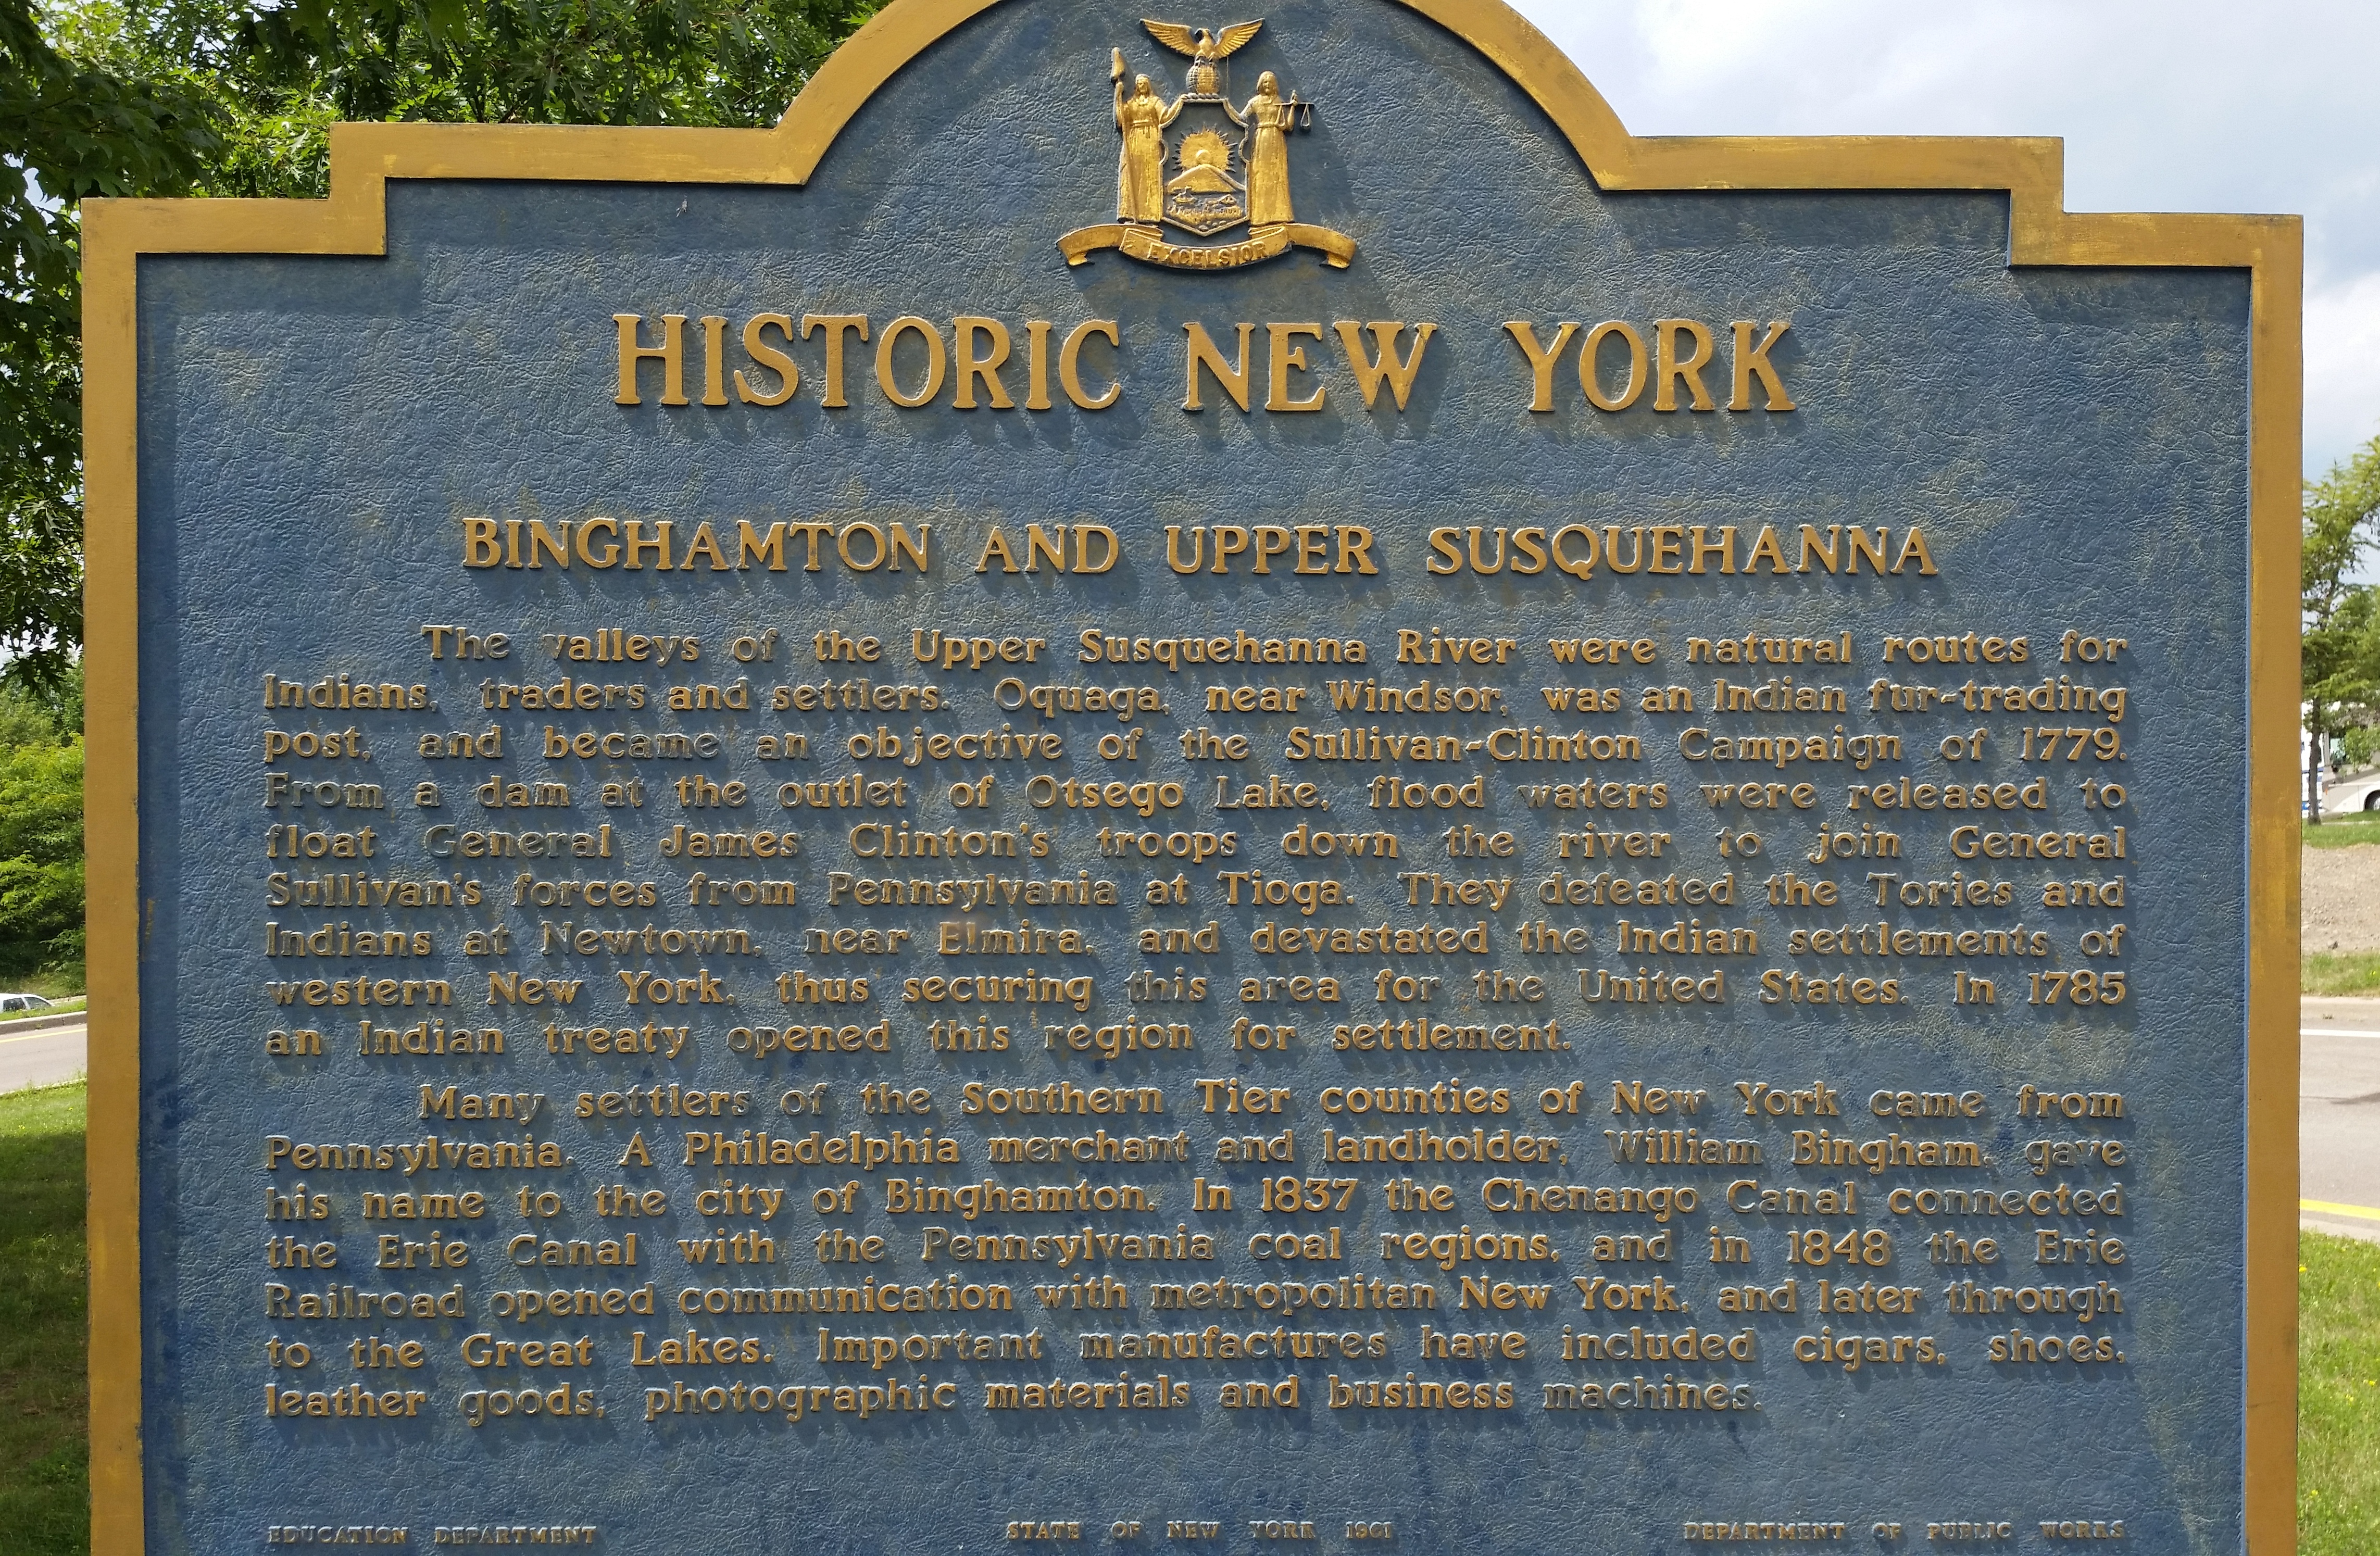 Historical marker at Kirkwood, New York. Photo taken on August 11, 2016.